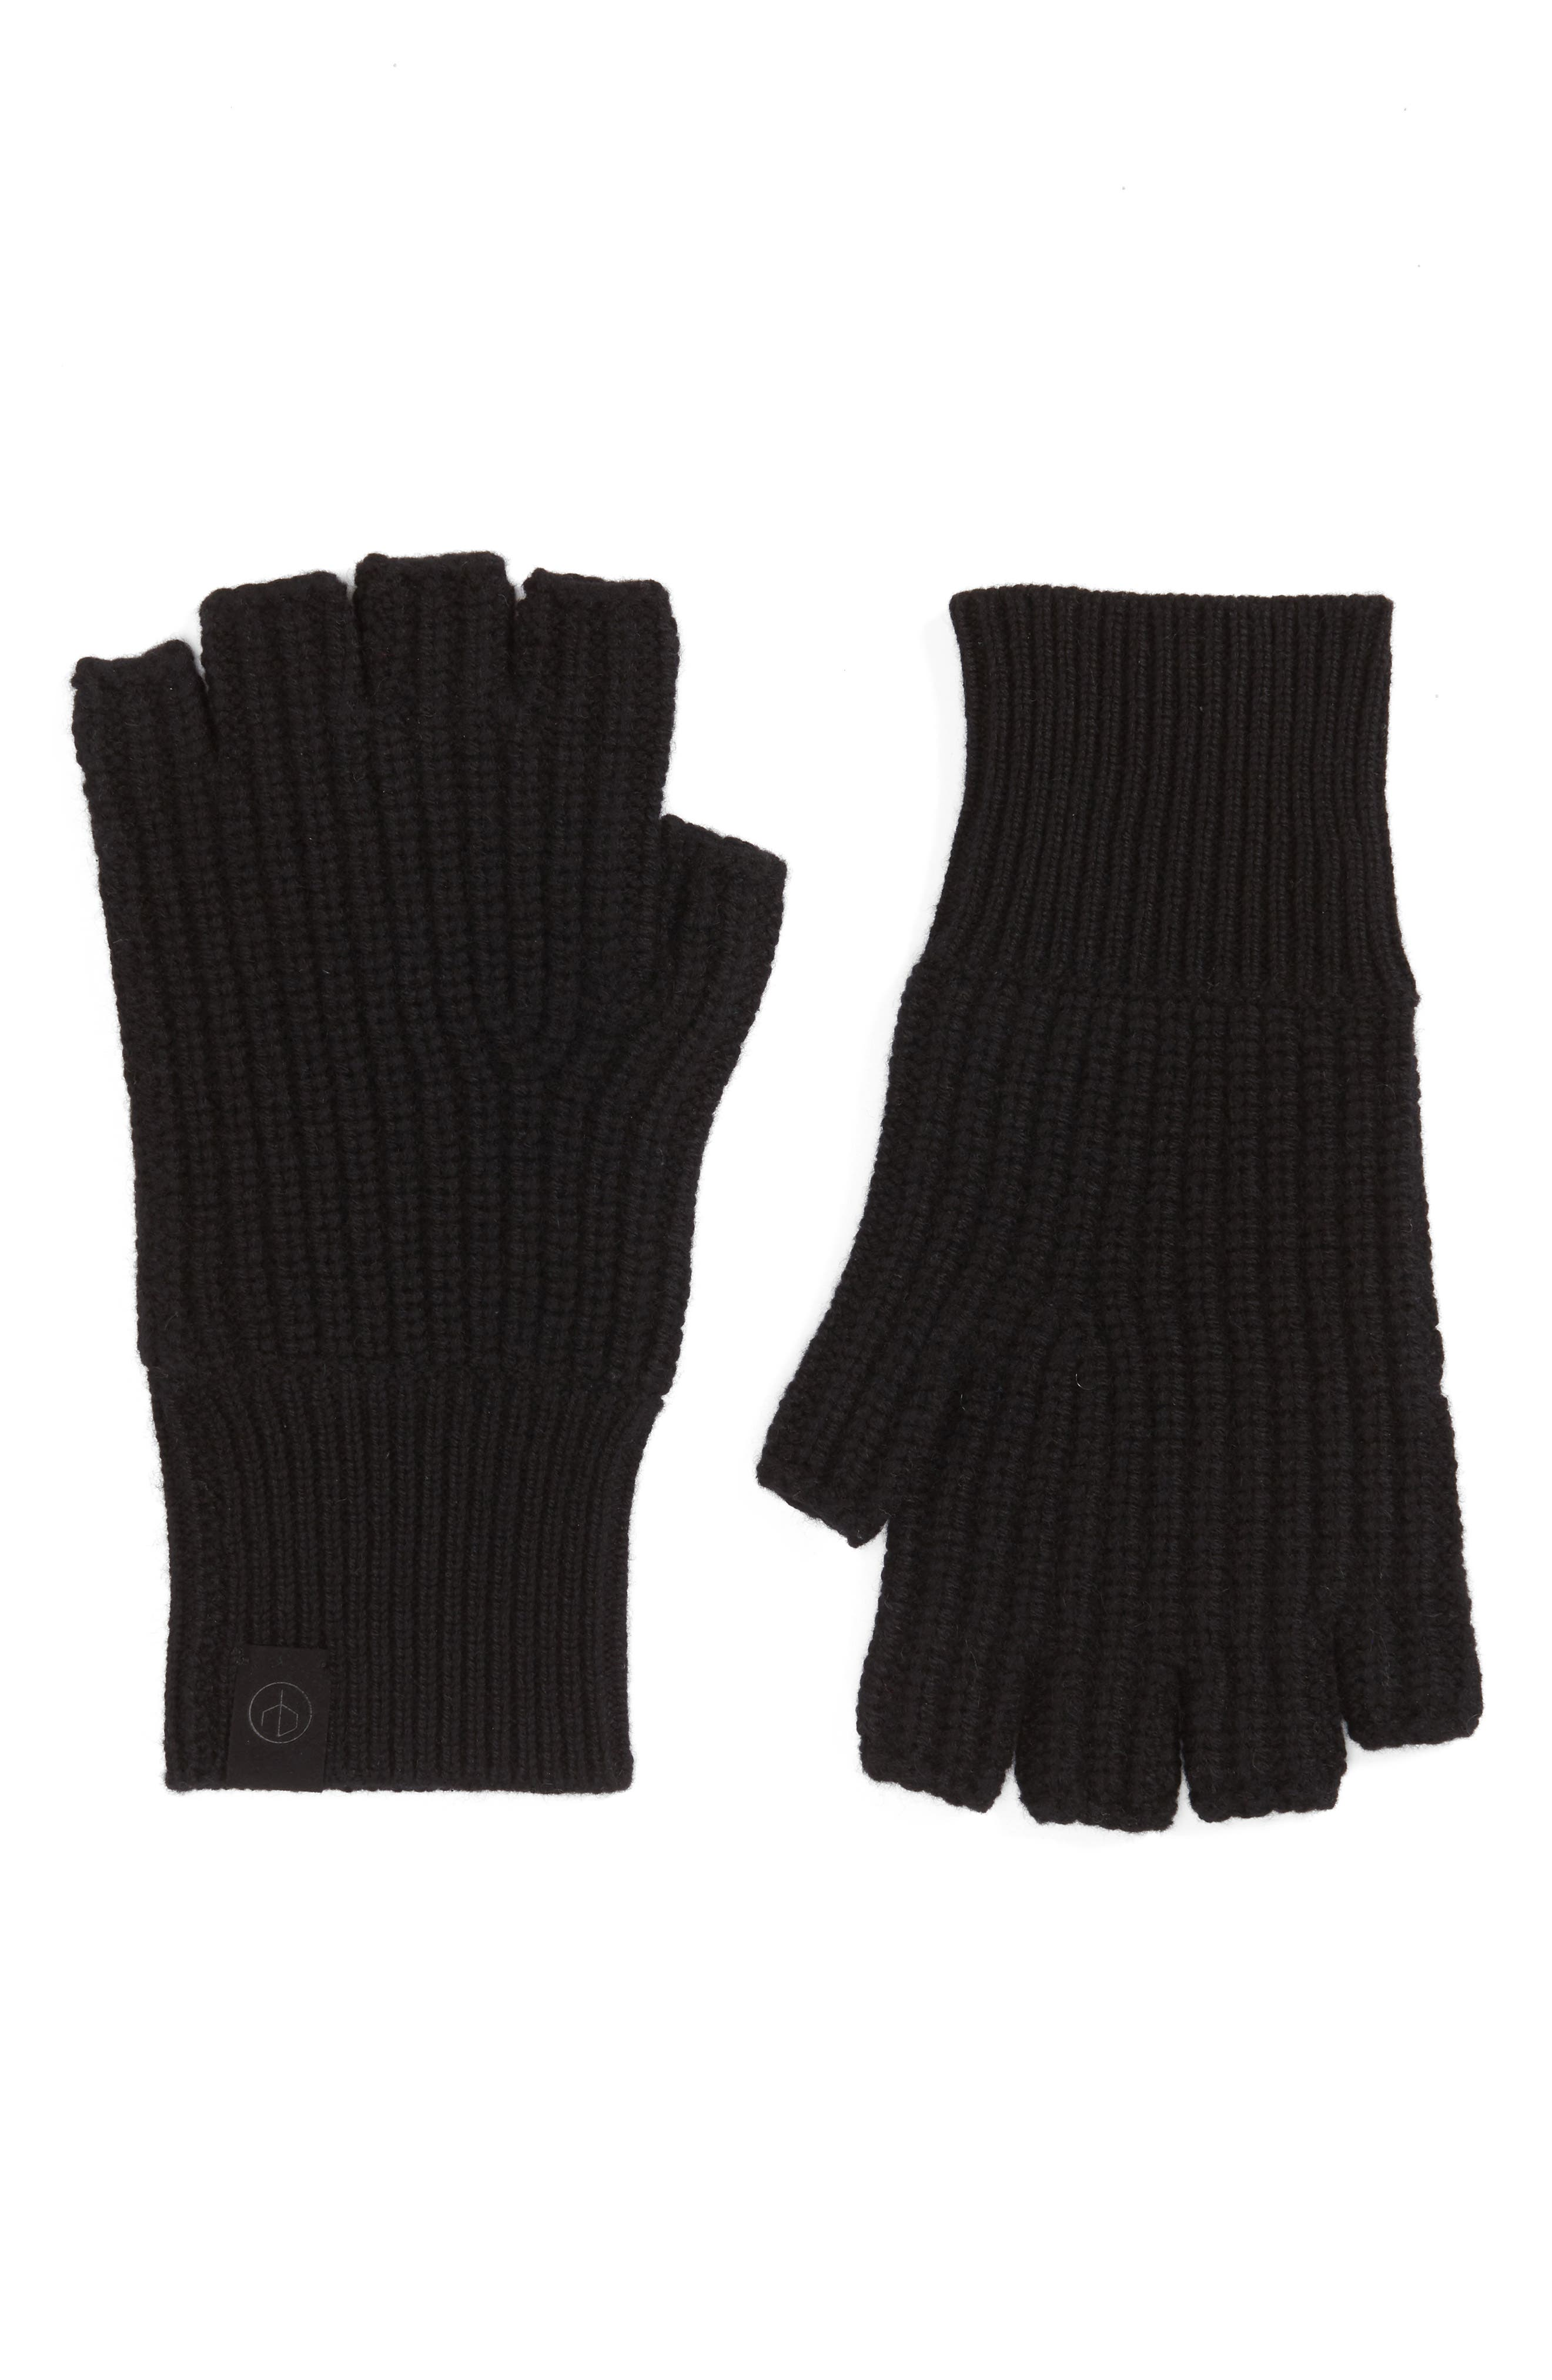 Ace Cashmere Knit Fingerless Gloves,                         Main,                         color,